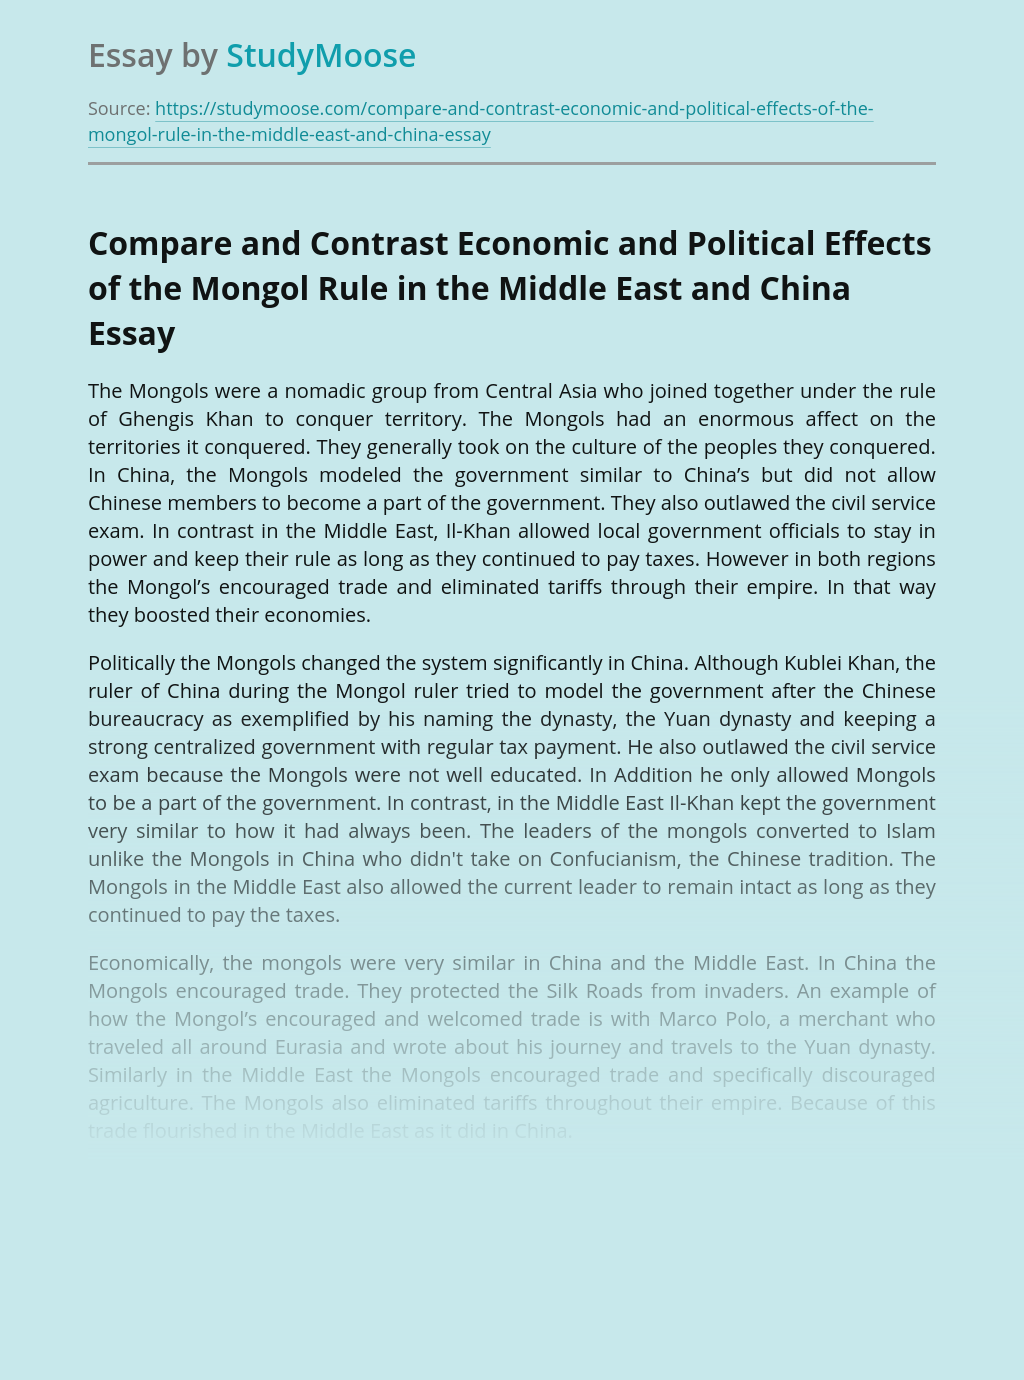 Compare and Contrast Economic and Political Effects of the Mongol Rule in the Middle East and China